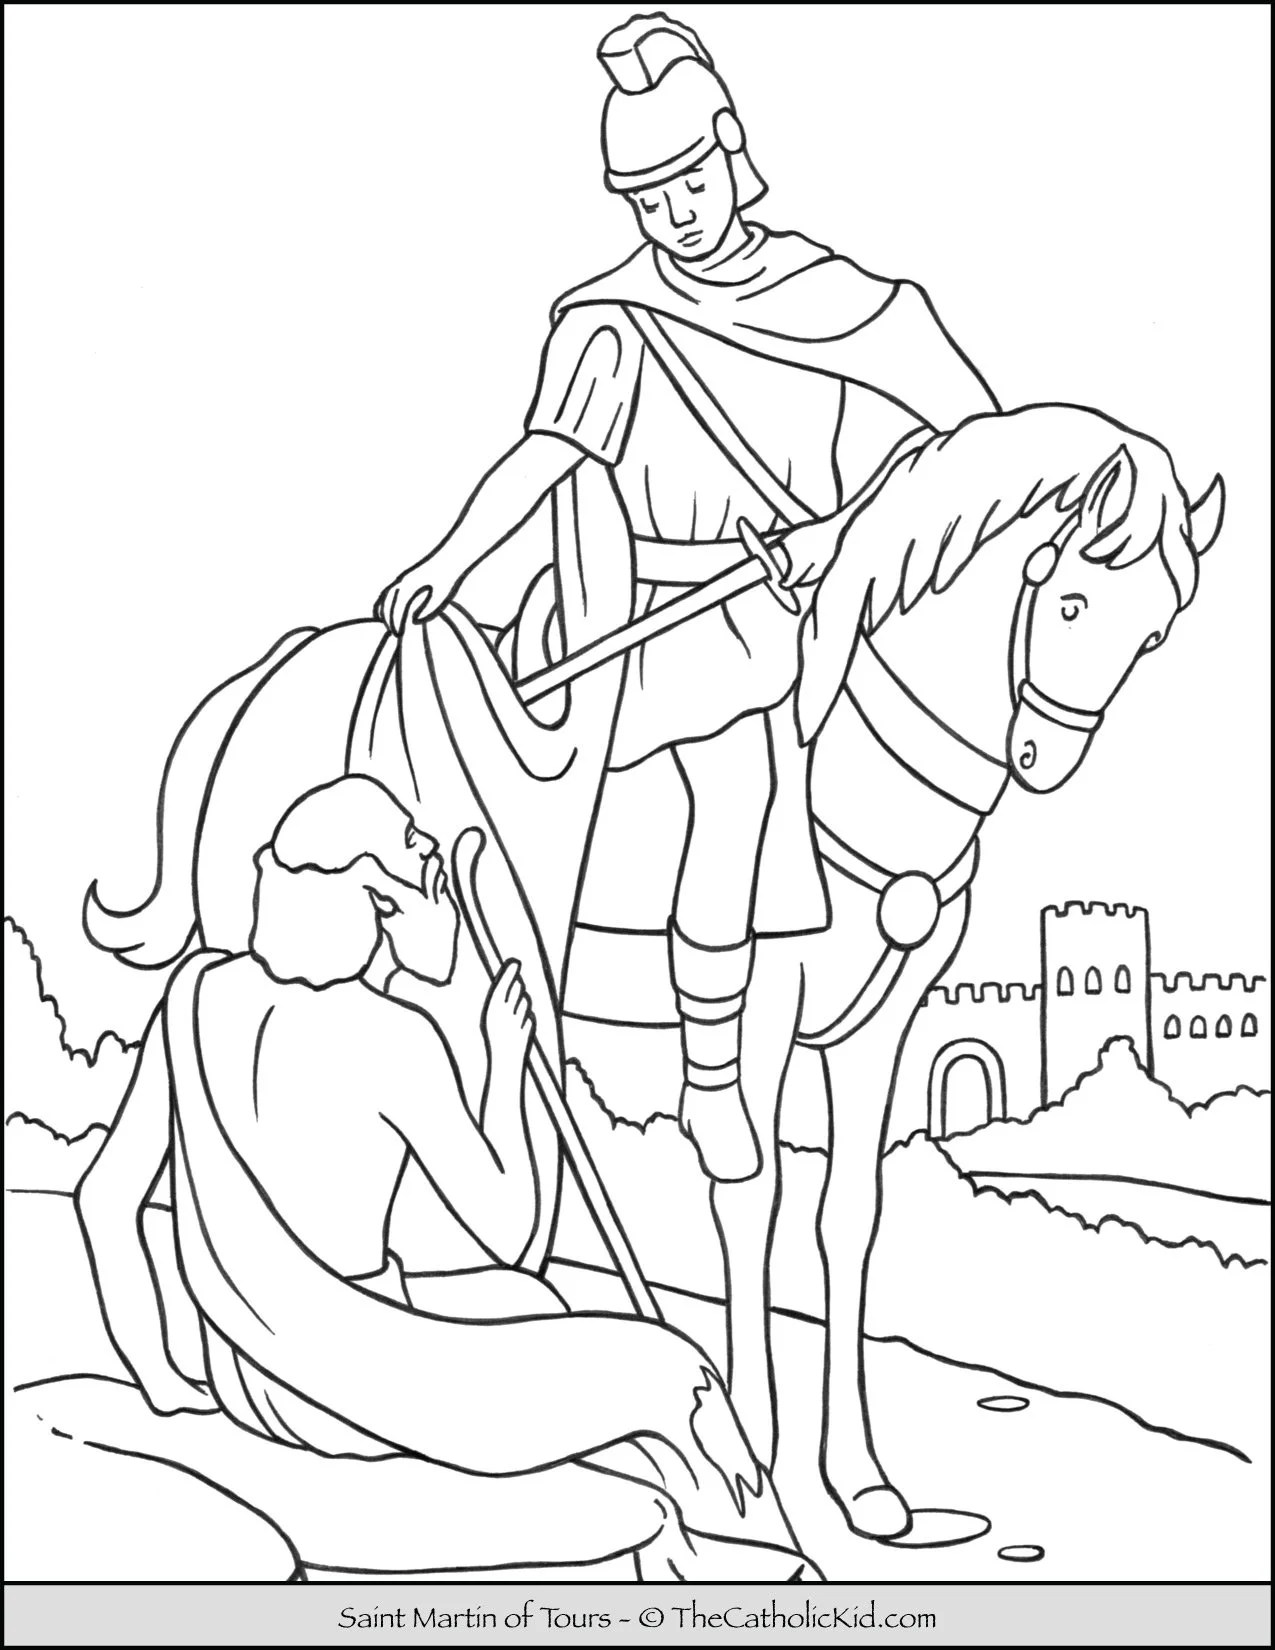 Saint Martin of Tours Coloring Page - TheCatholicKid